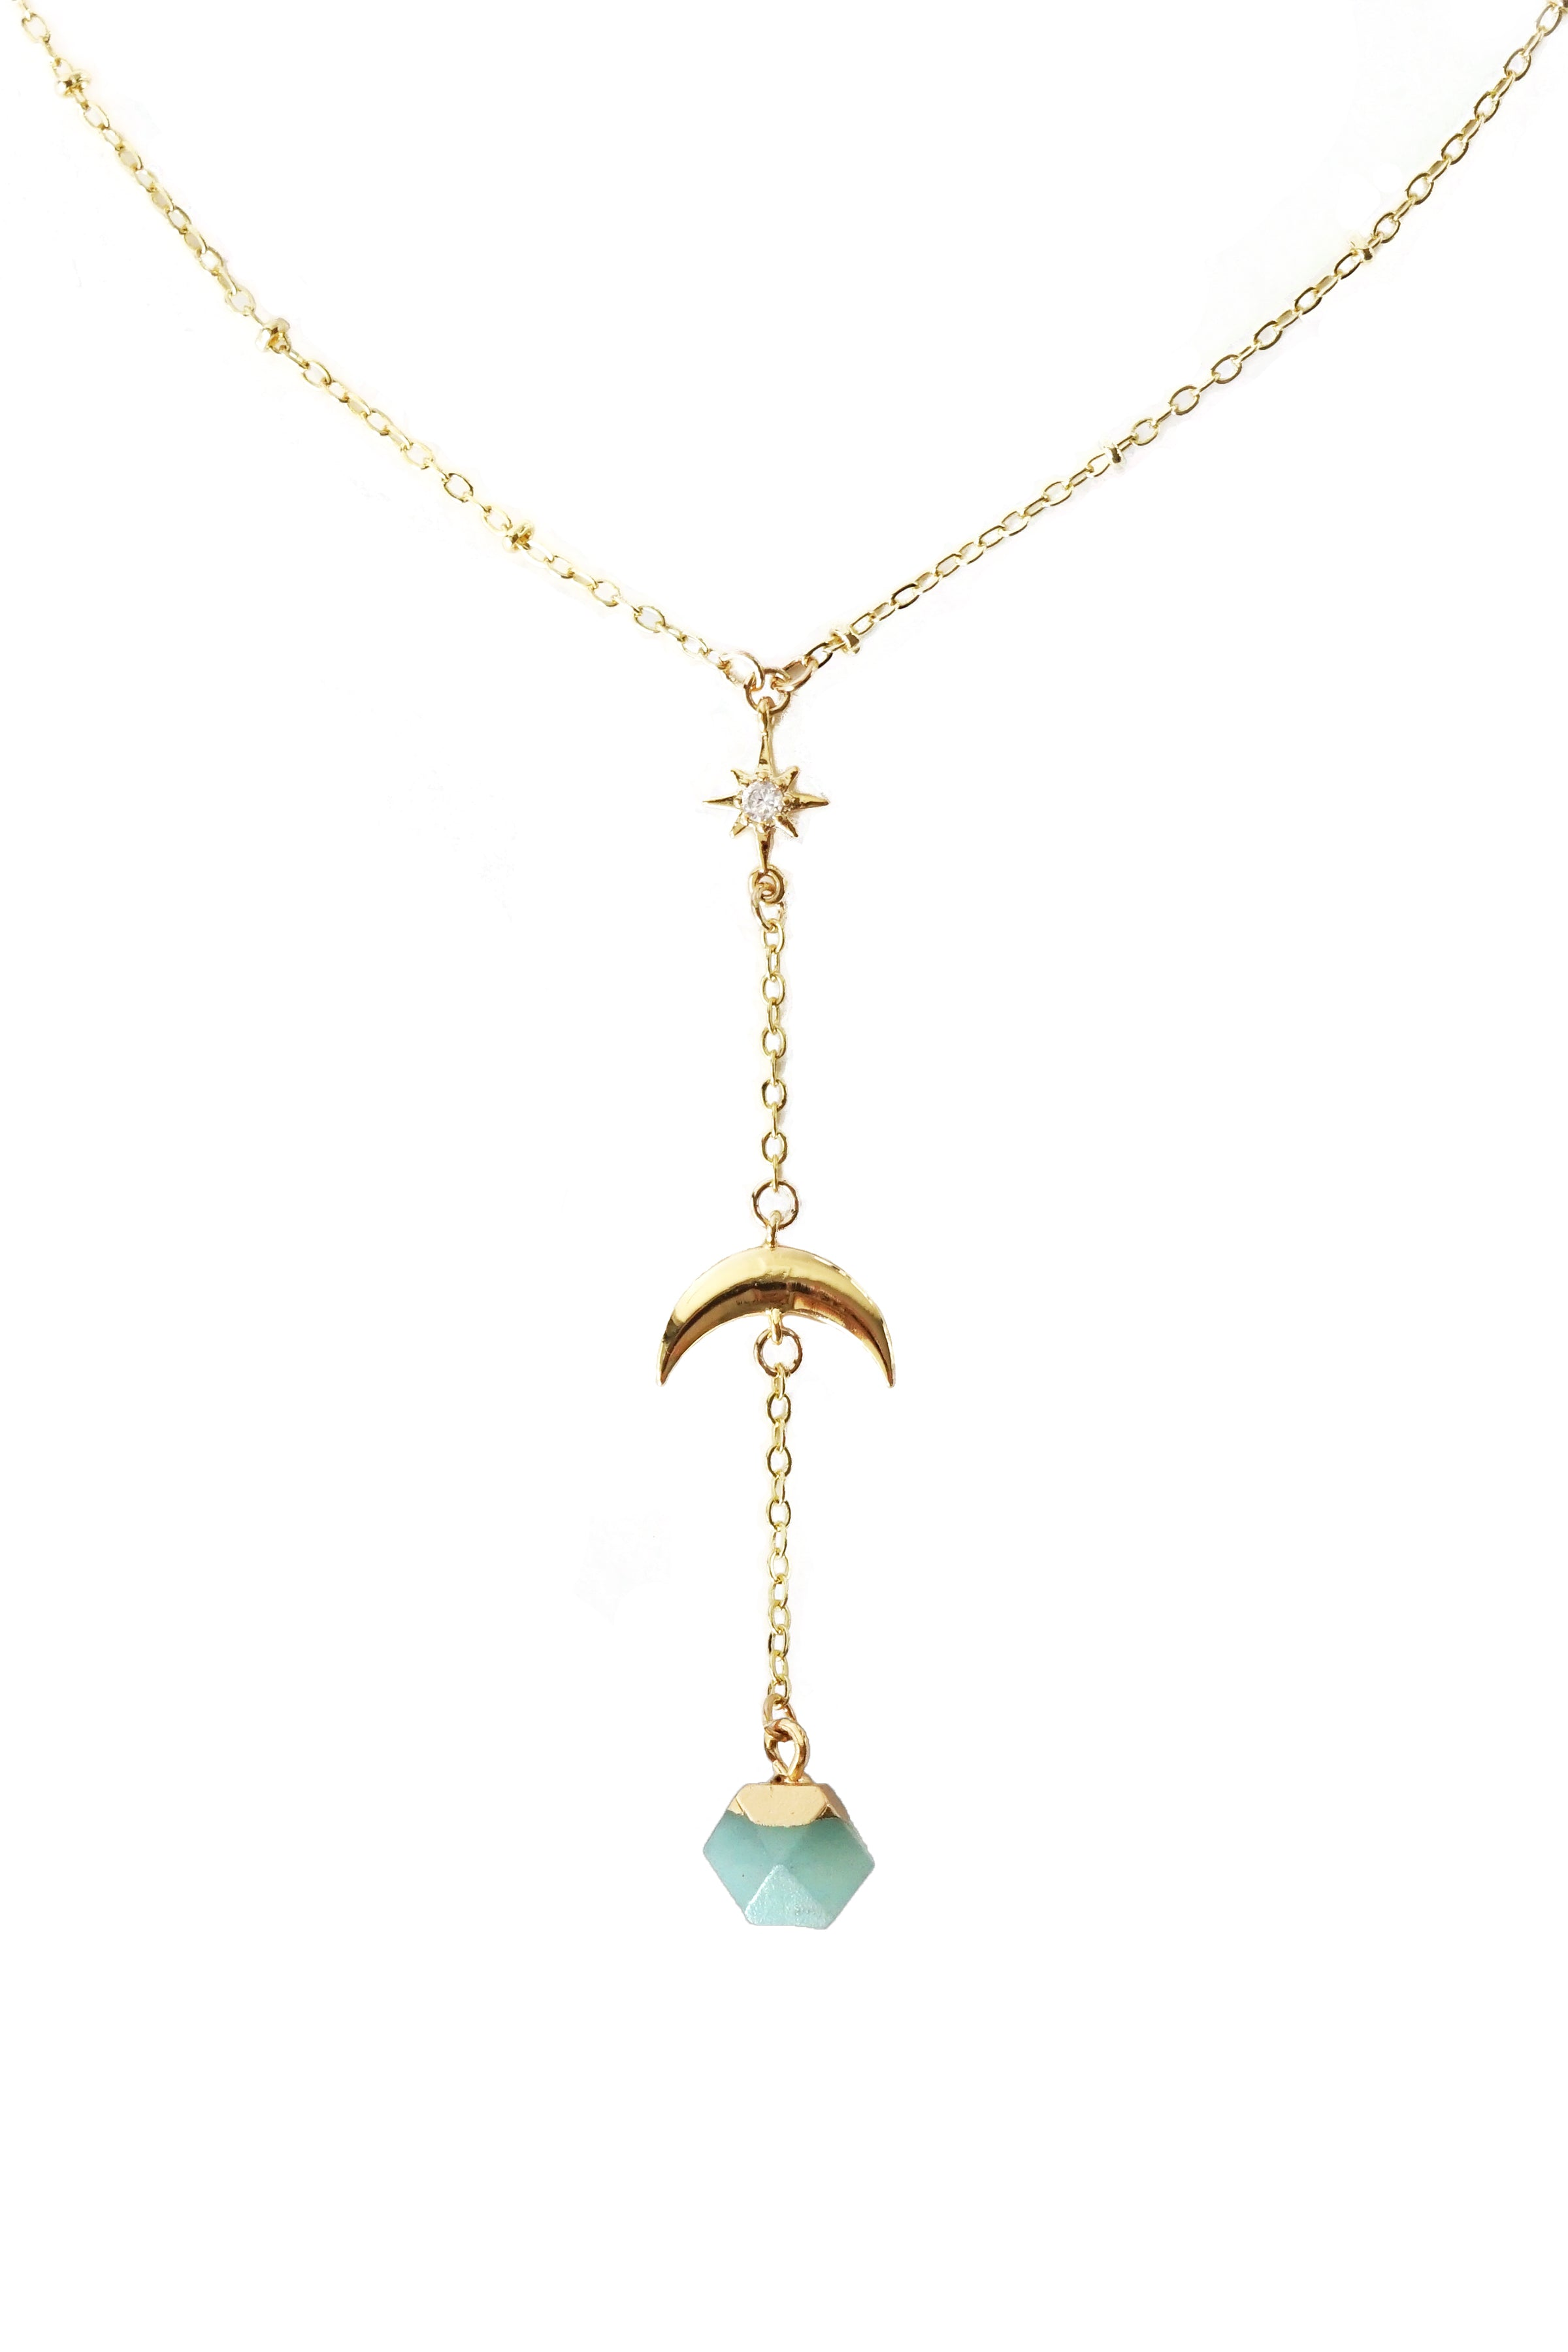 In The Sky With Diamonds Necklace - Amazonite